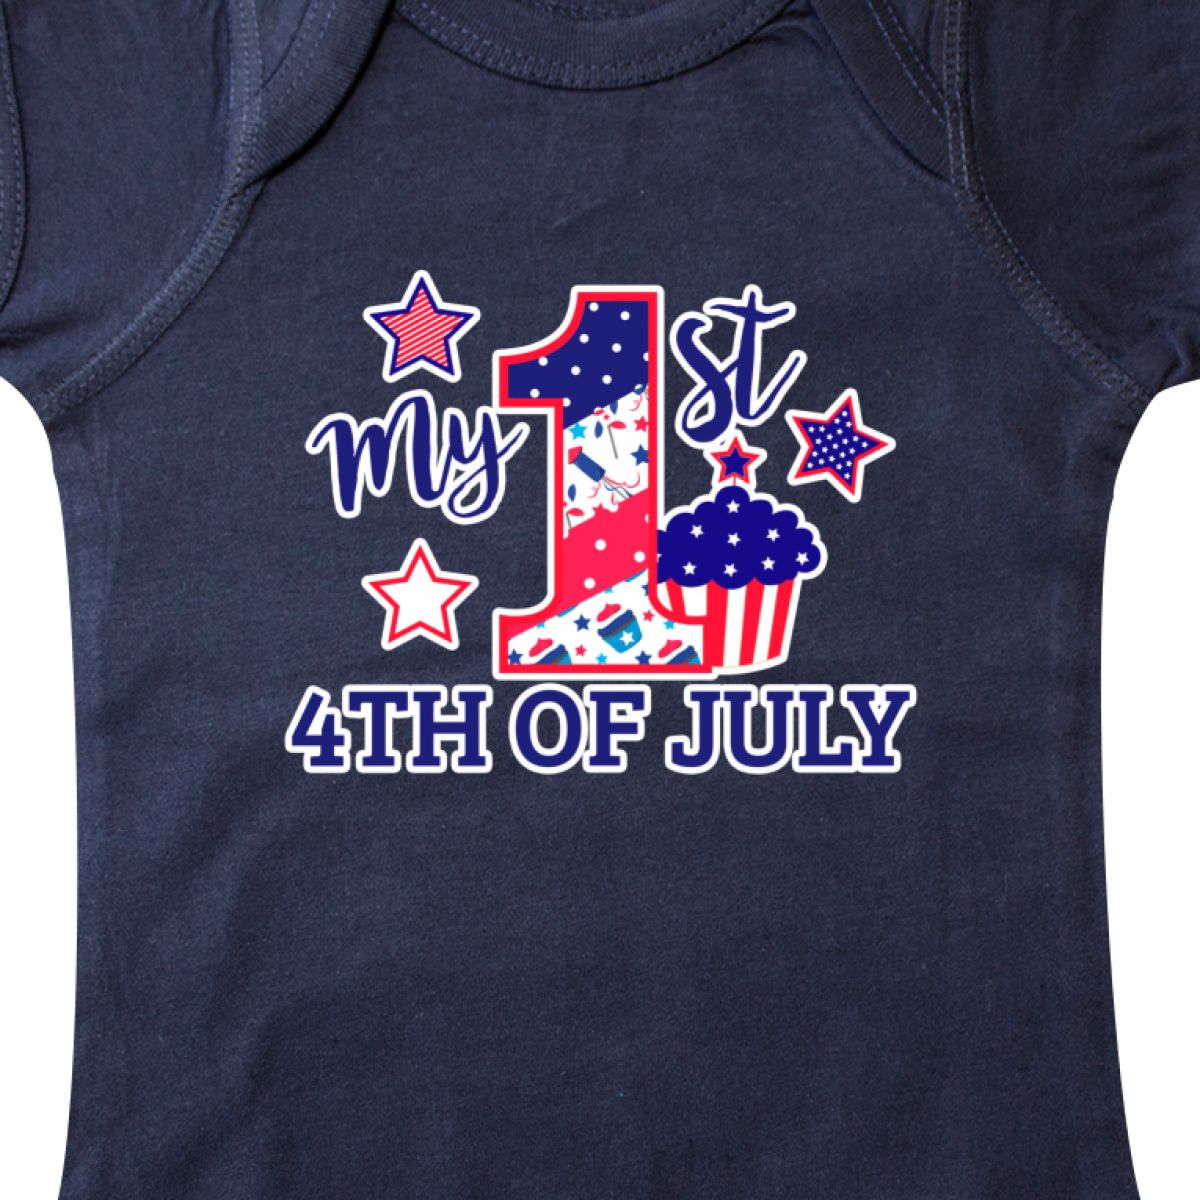 Inktastic-My-1st-4th-Of-July-With-Stars-And-Cupcake-Infant-Creeper-Fourth-Kids thumbnail 6